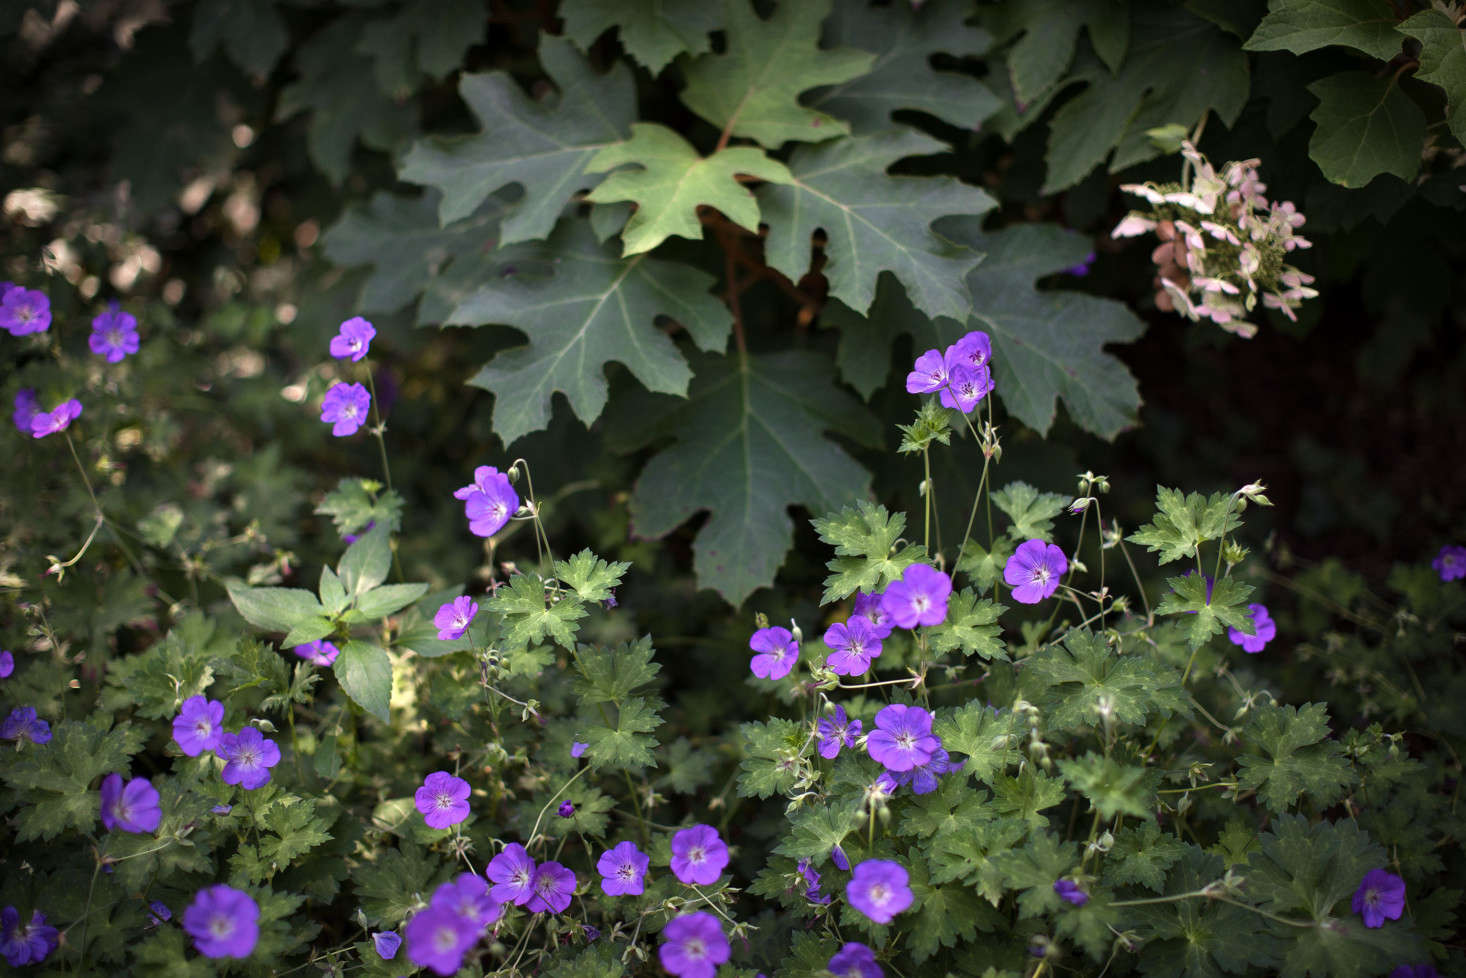 Perennial flowers and shrubs such as these cranesbill geraniums and oak-leaf hydrangea provide a textured transitional border between the lawn and woodlands.